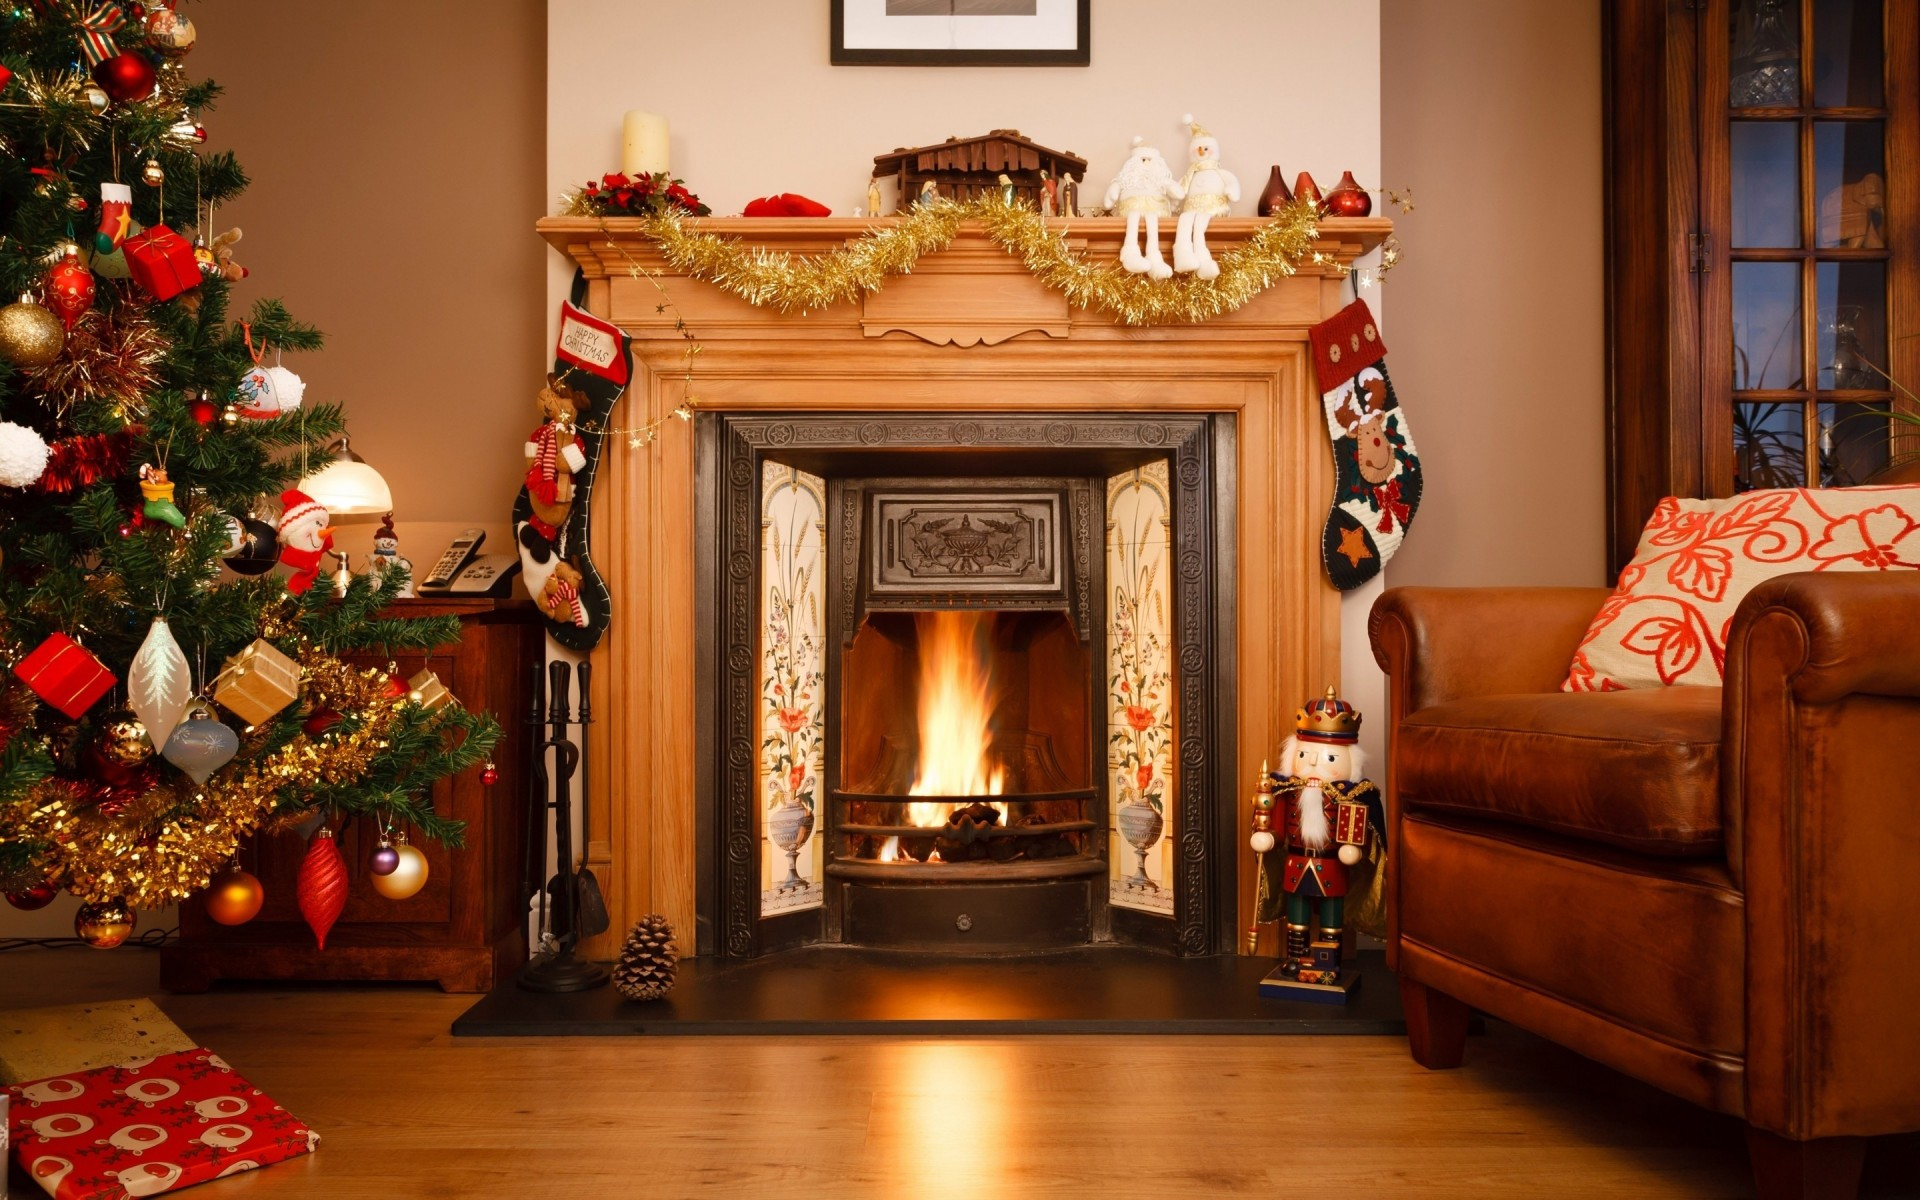 three chicks are fucking next to the fireplace on christmas  269290